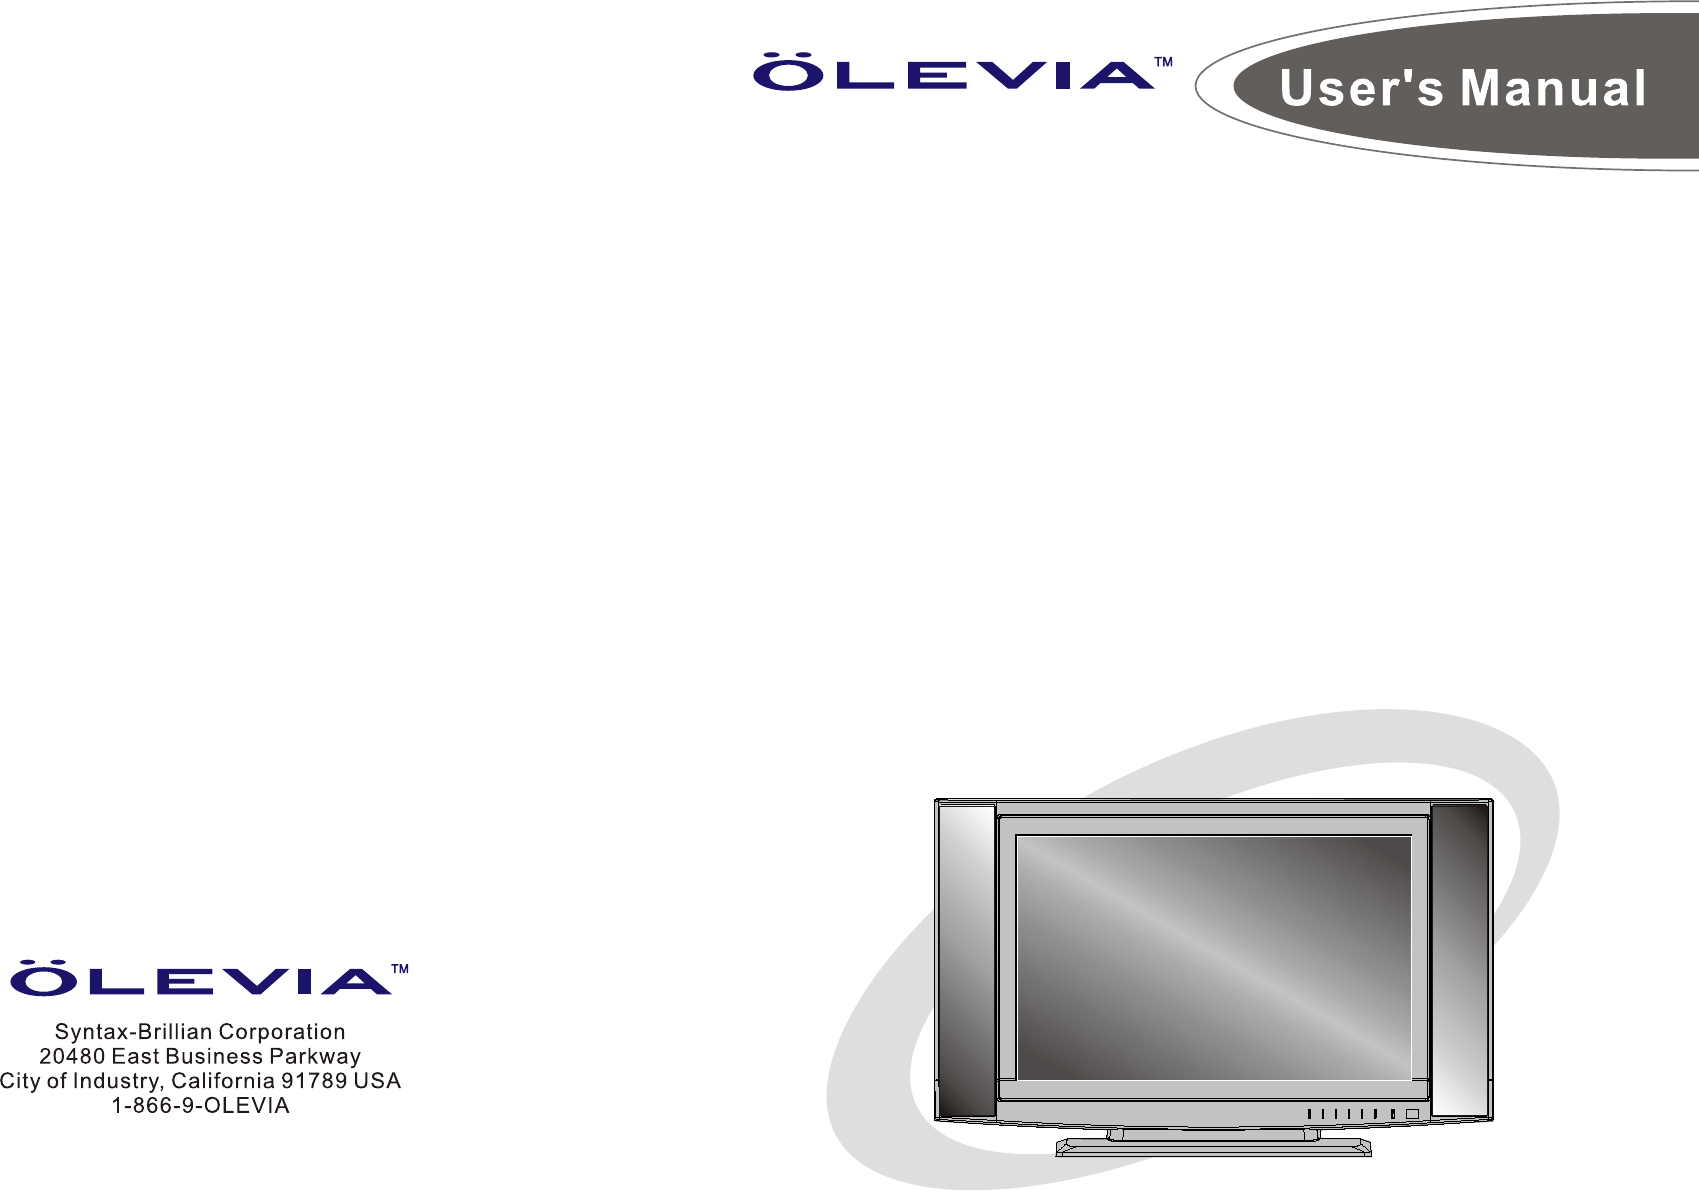 olevia flat panel television 4 series user guide manualsonline com rh tv manualsonline com olevia flat screen tv owner's manual Olevia TV's Website